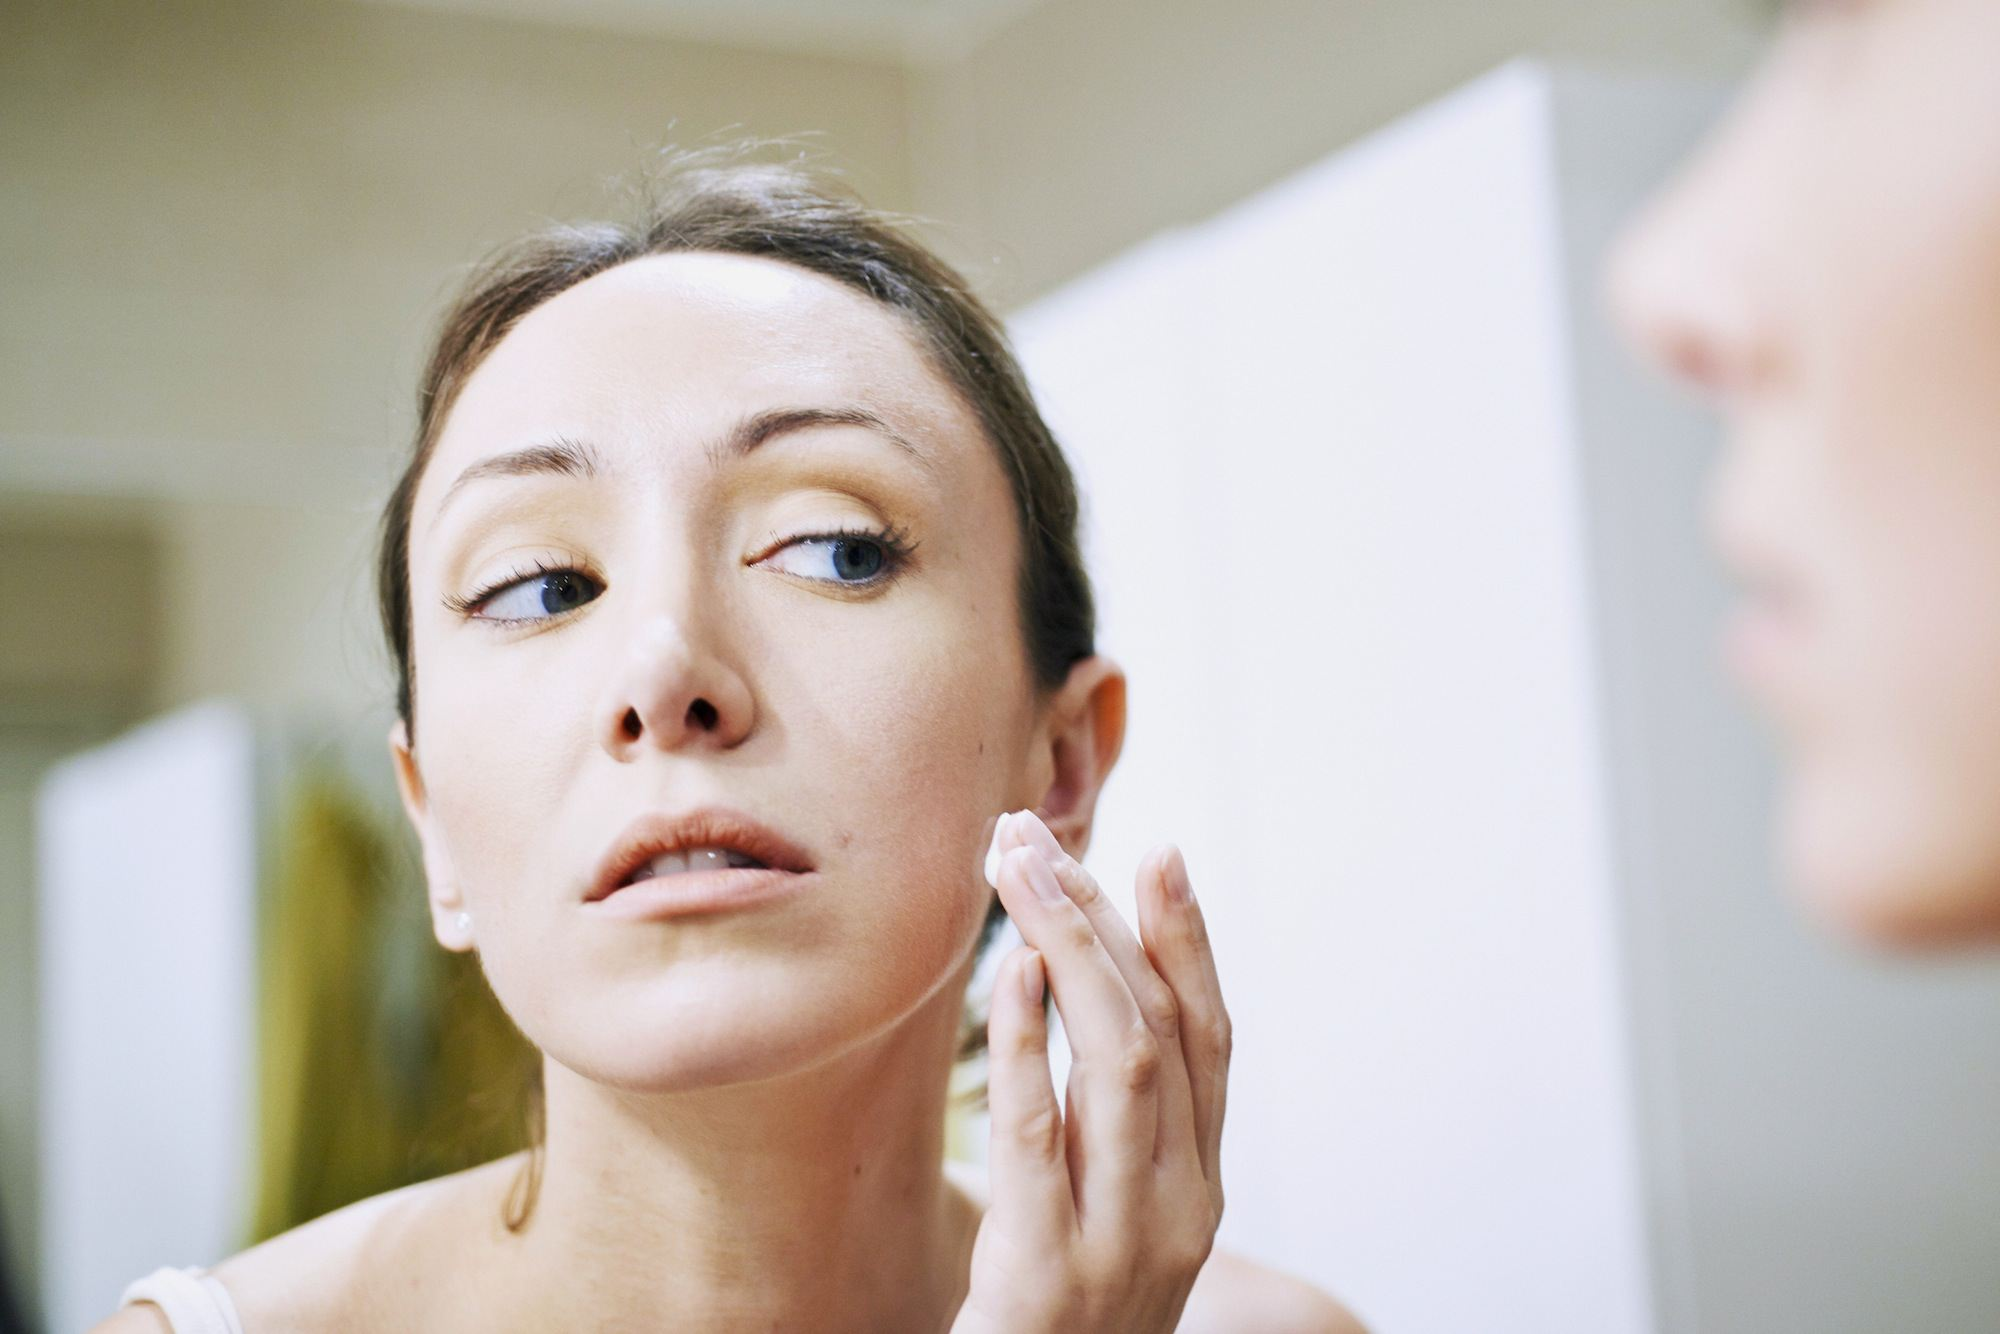 Woman applying cream on her face. France